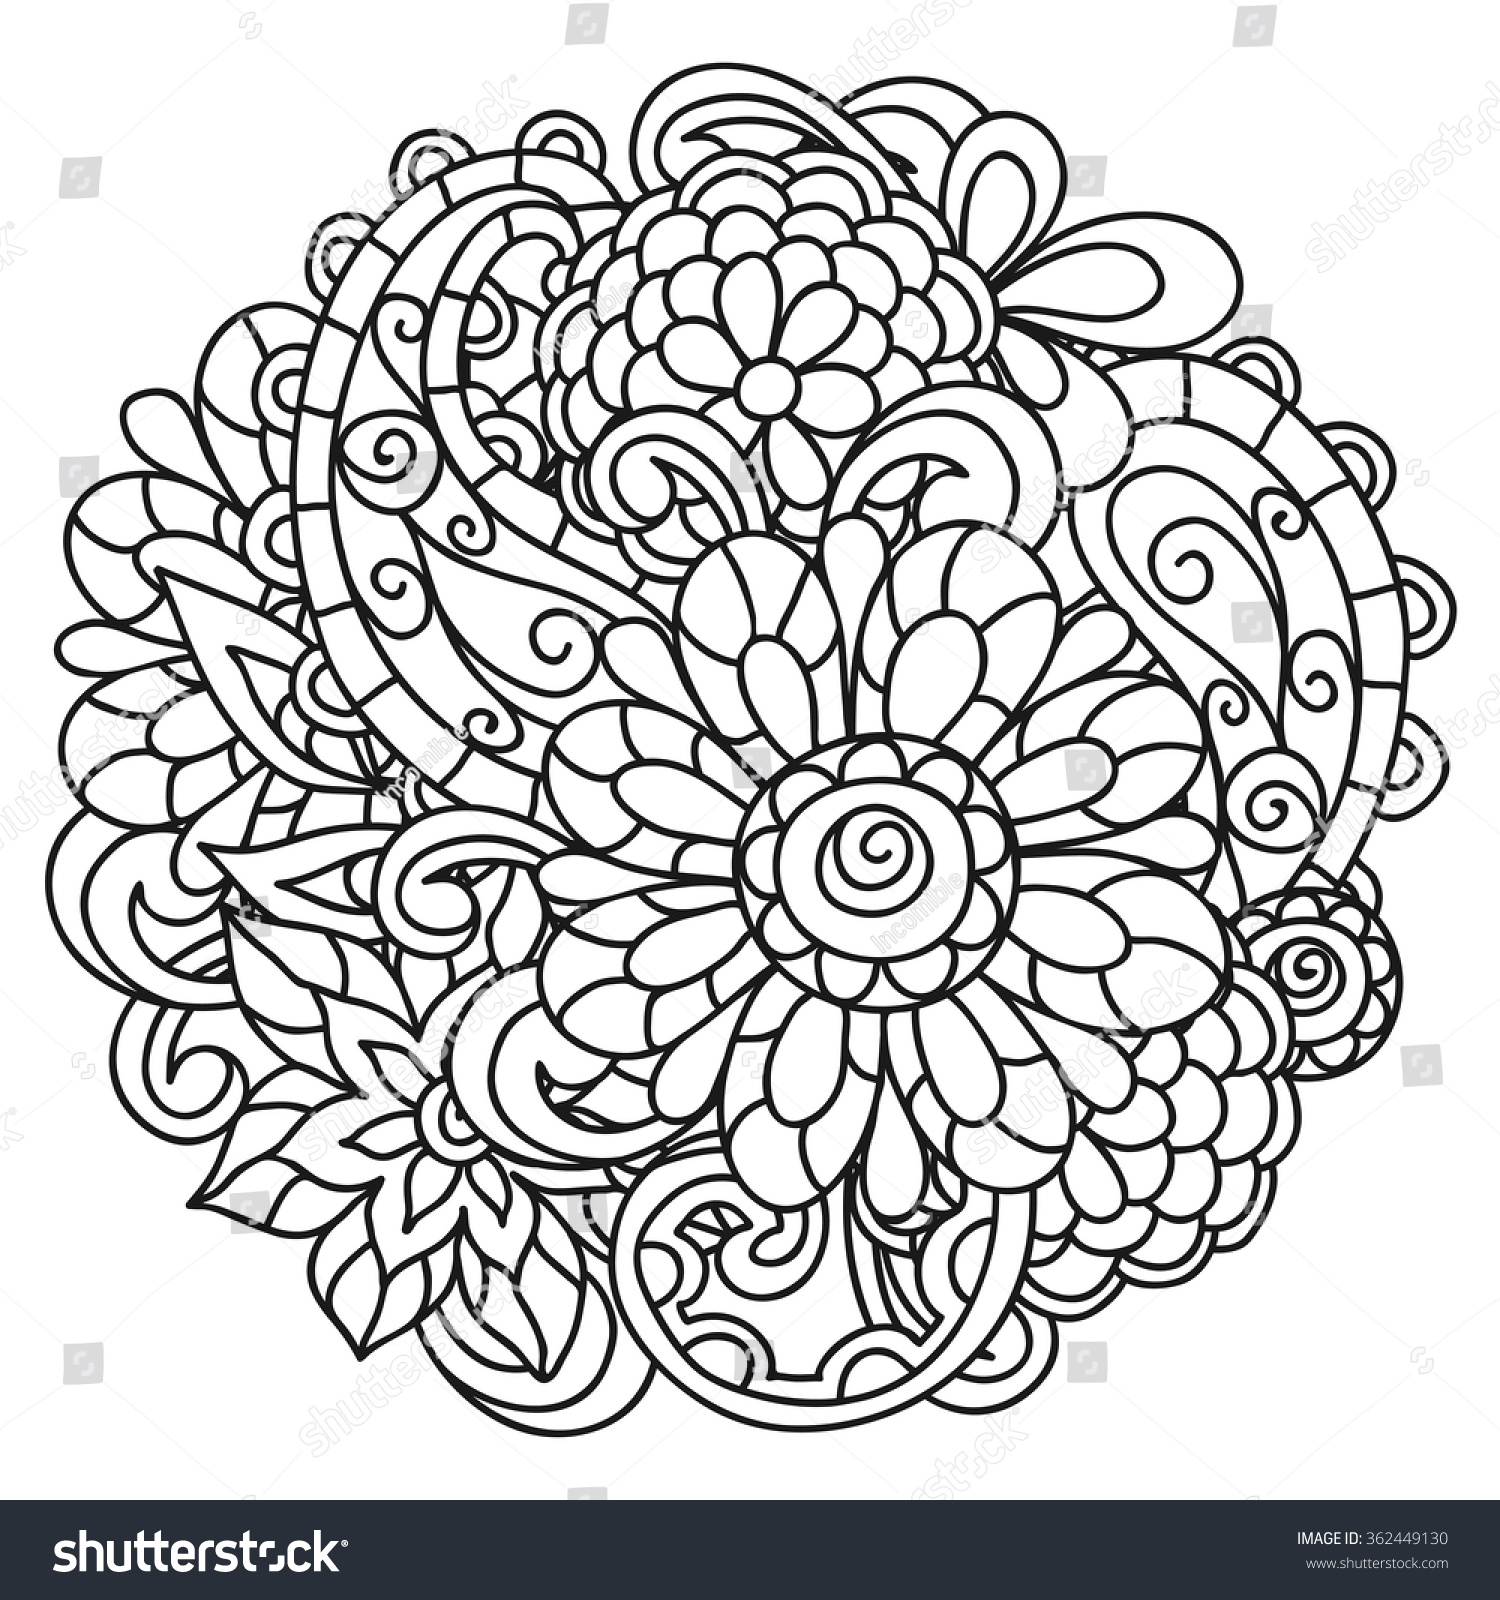 background line flowers coloring page stock vector 362449130